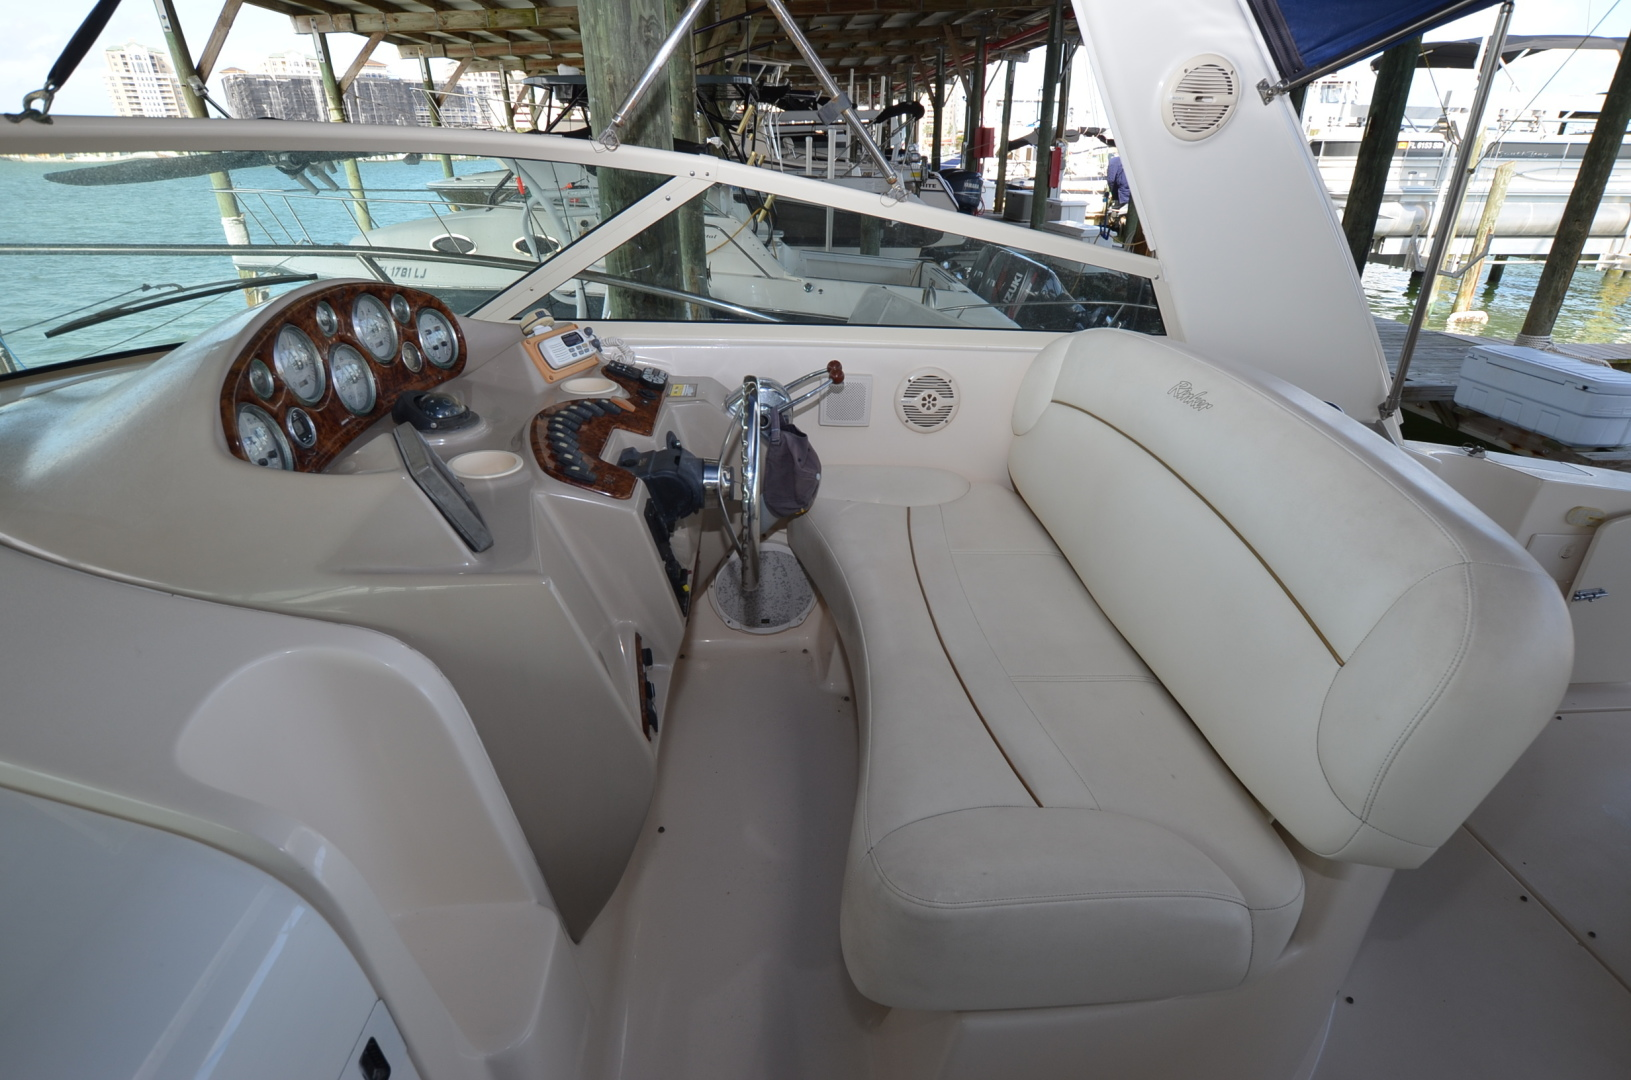 Rinker-342 Fiesta Vee 2004-Constant Motion Clearwater-Florida-United States-1538231 | Thumbnail